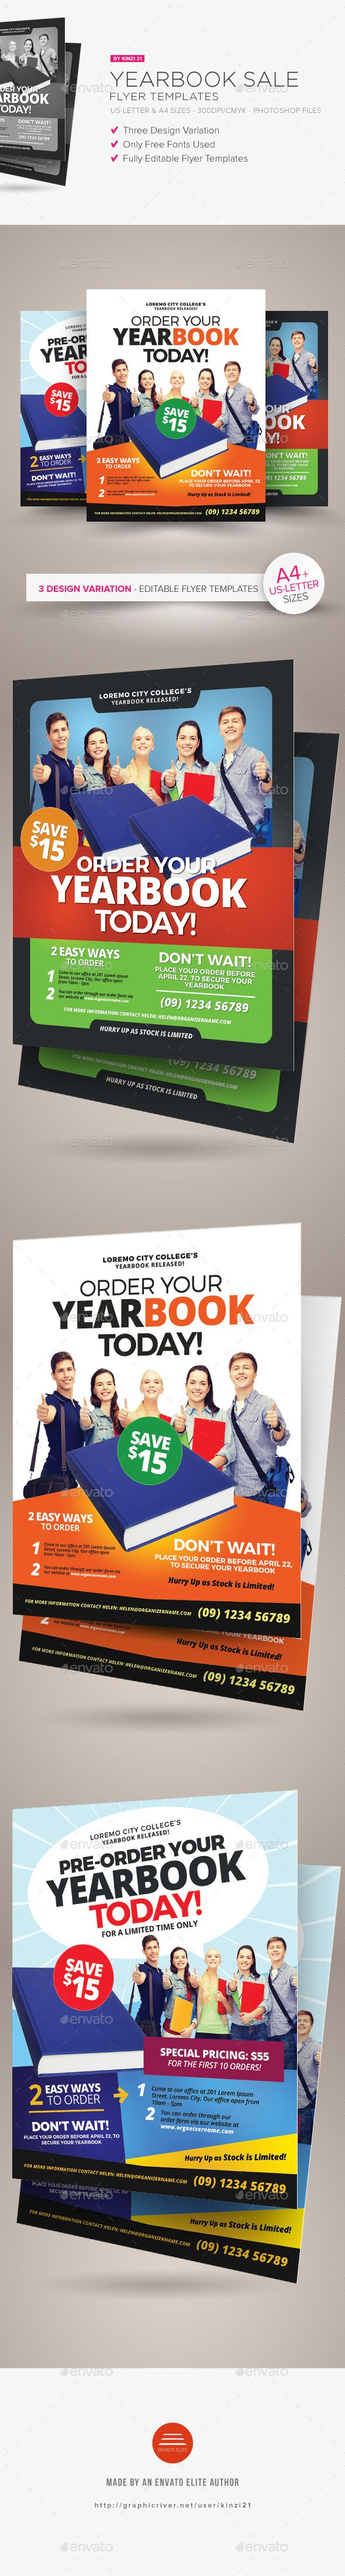 Yearbook Sale Flyer Templates Commerce Flyers Download Here